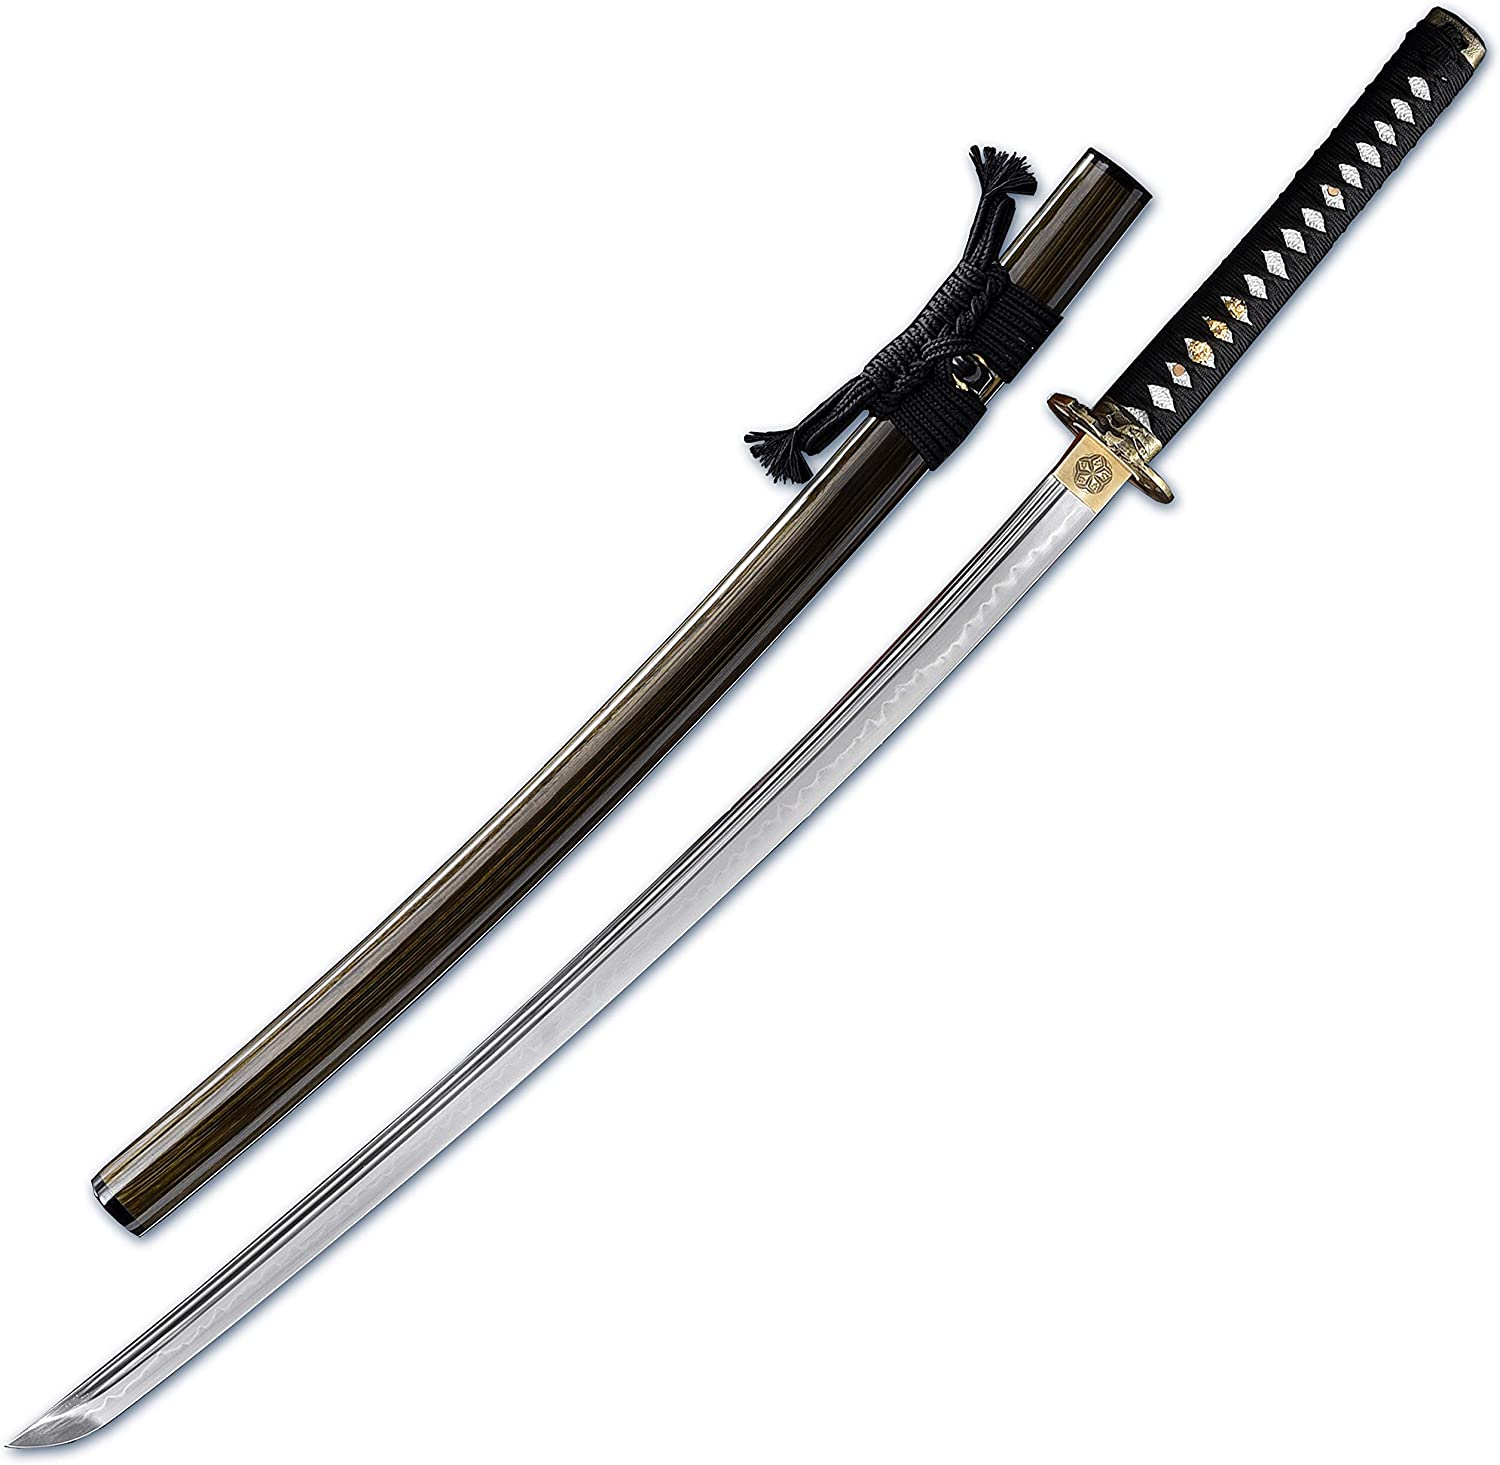 MURASAME Japanes Katana Sword Clay Tempered T10 Steel Razor Sharp Battle Ready Samurai